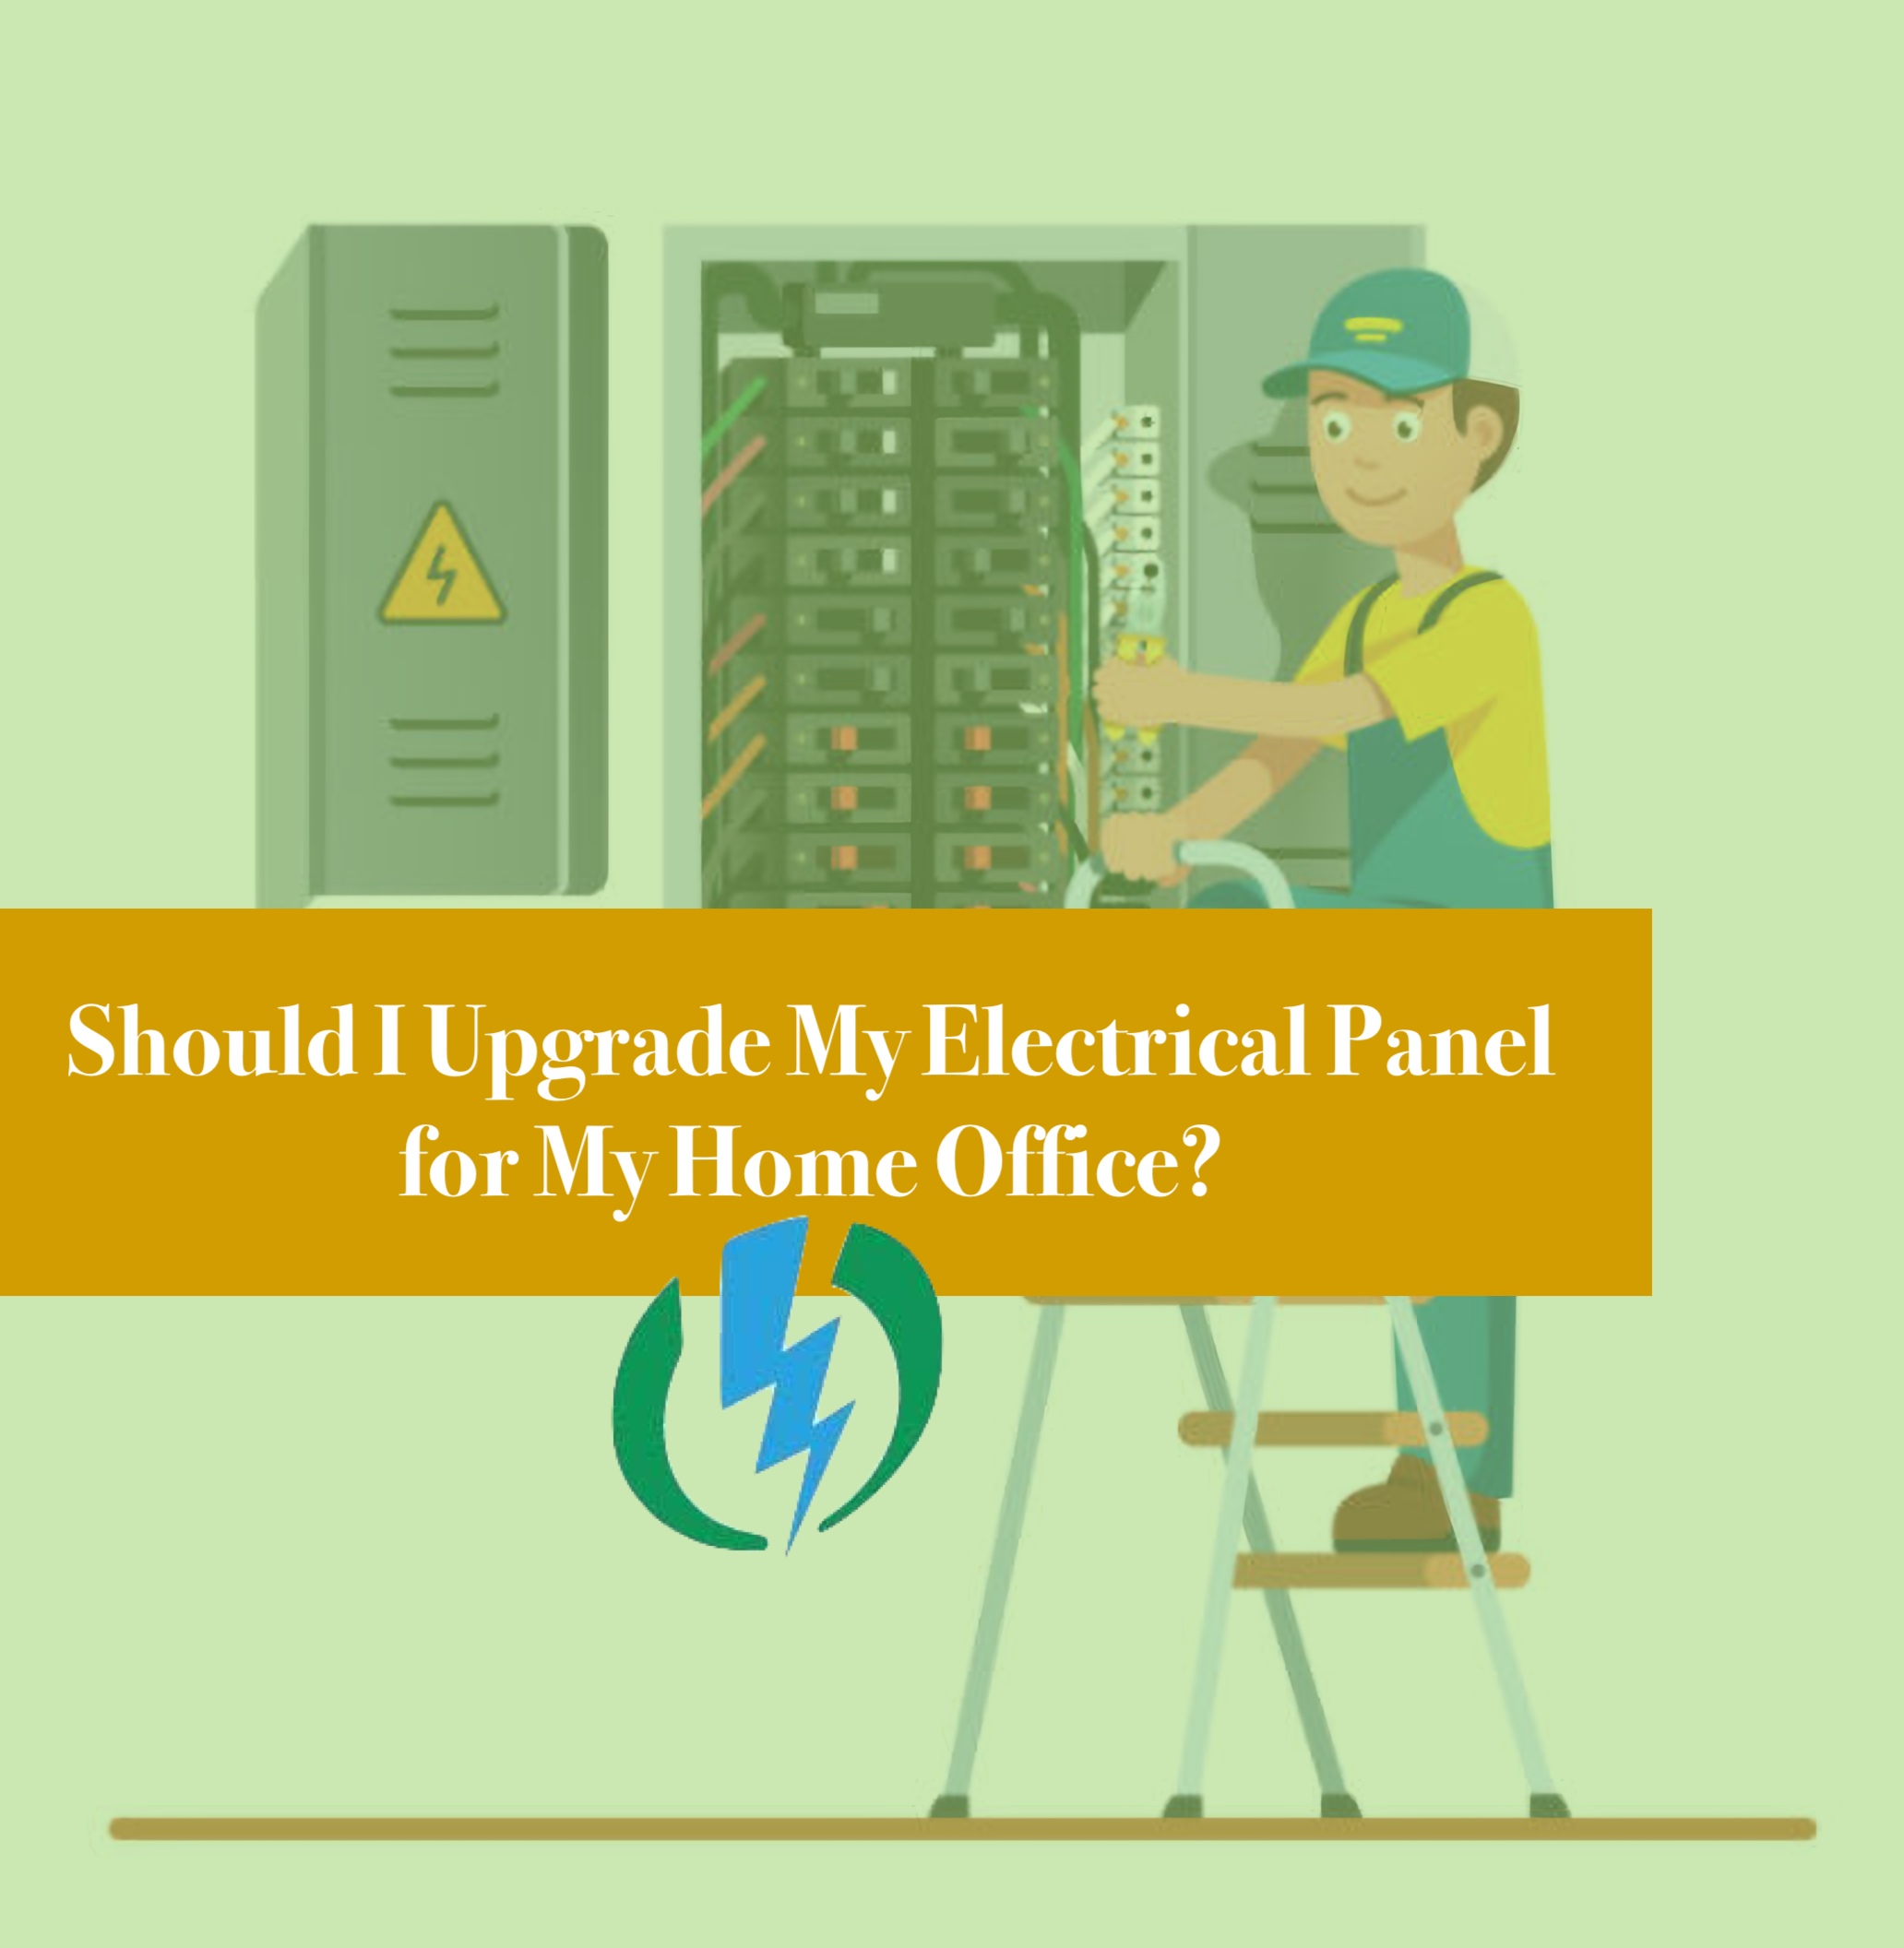 Should I Upgrade My Electrical Panel for My Home Office?